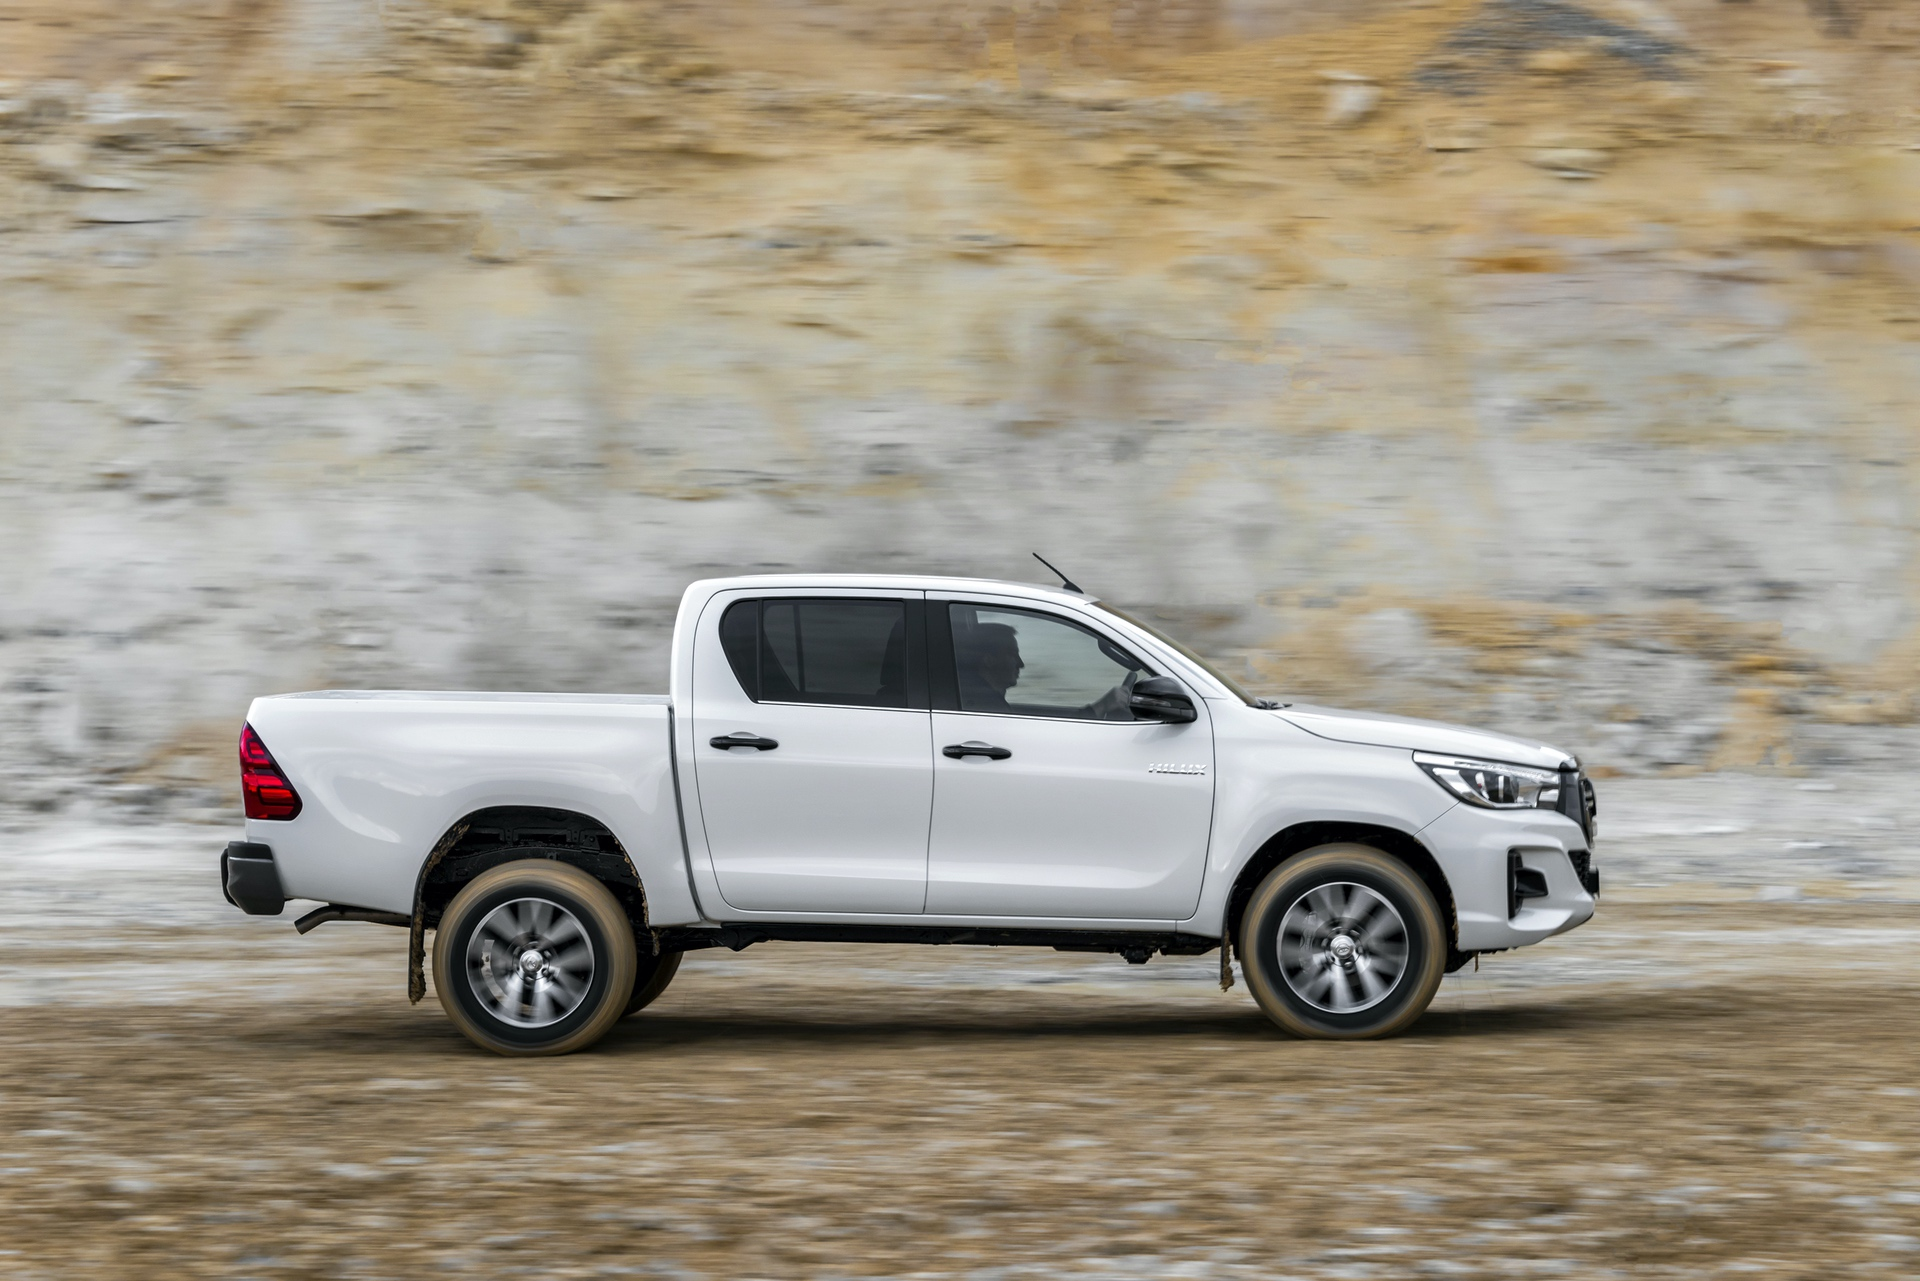 Toyota_Hilux_Special_Edition_0047